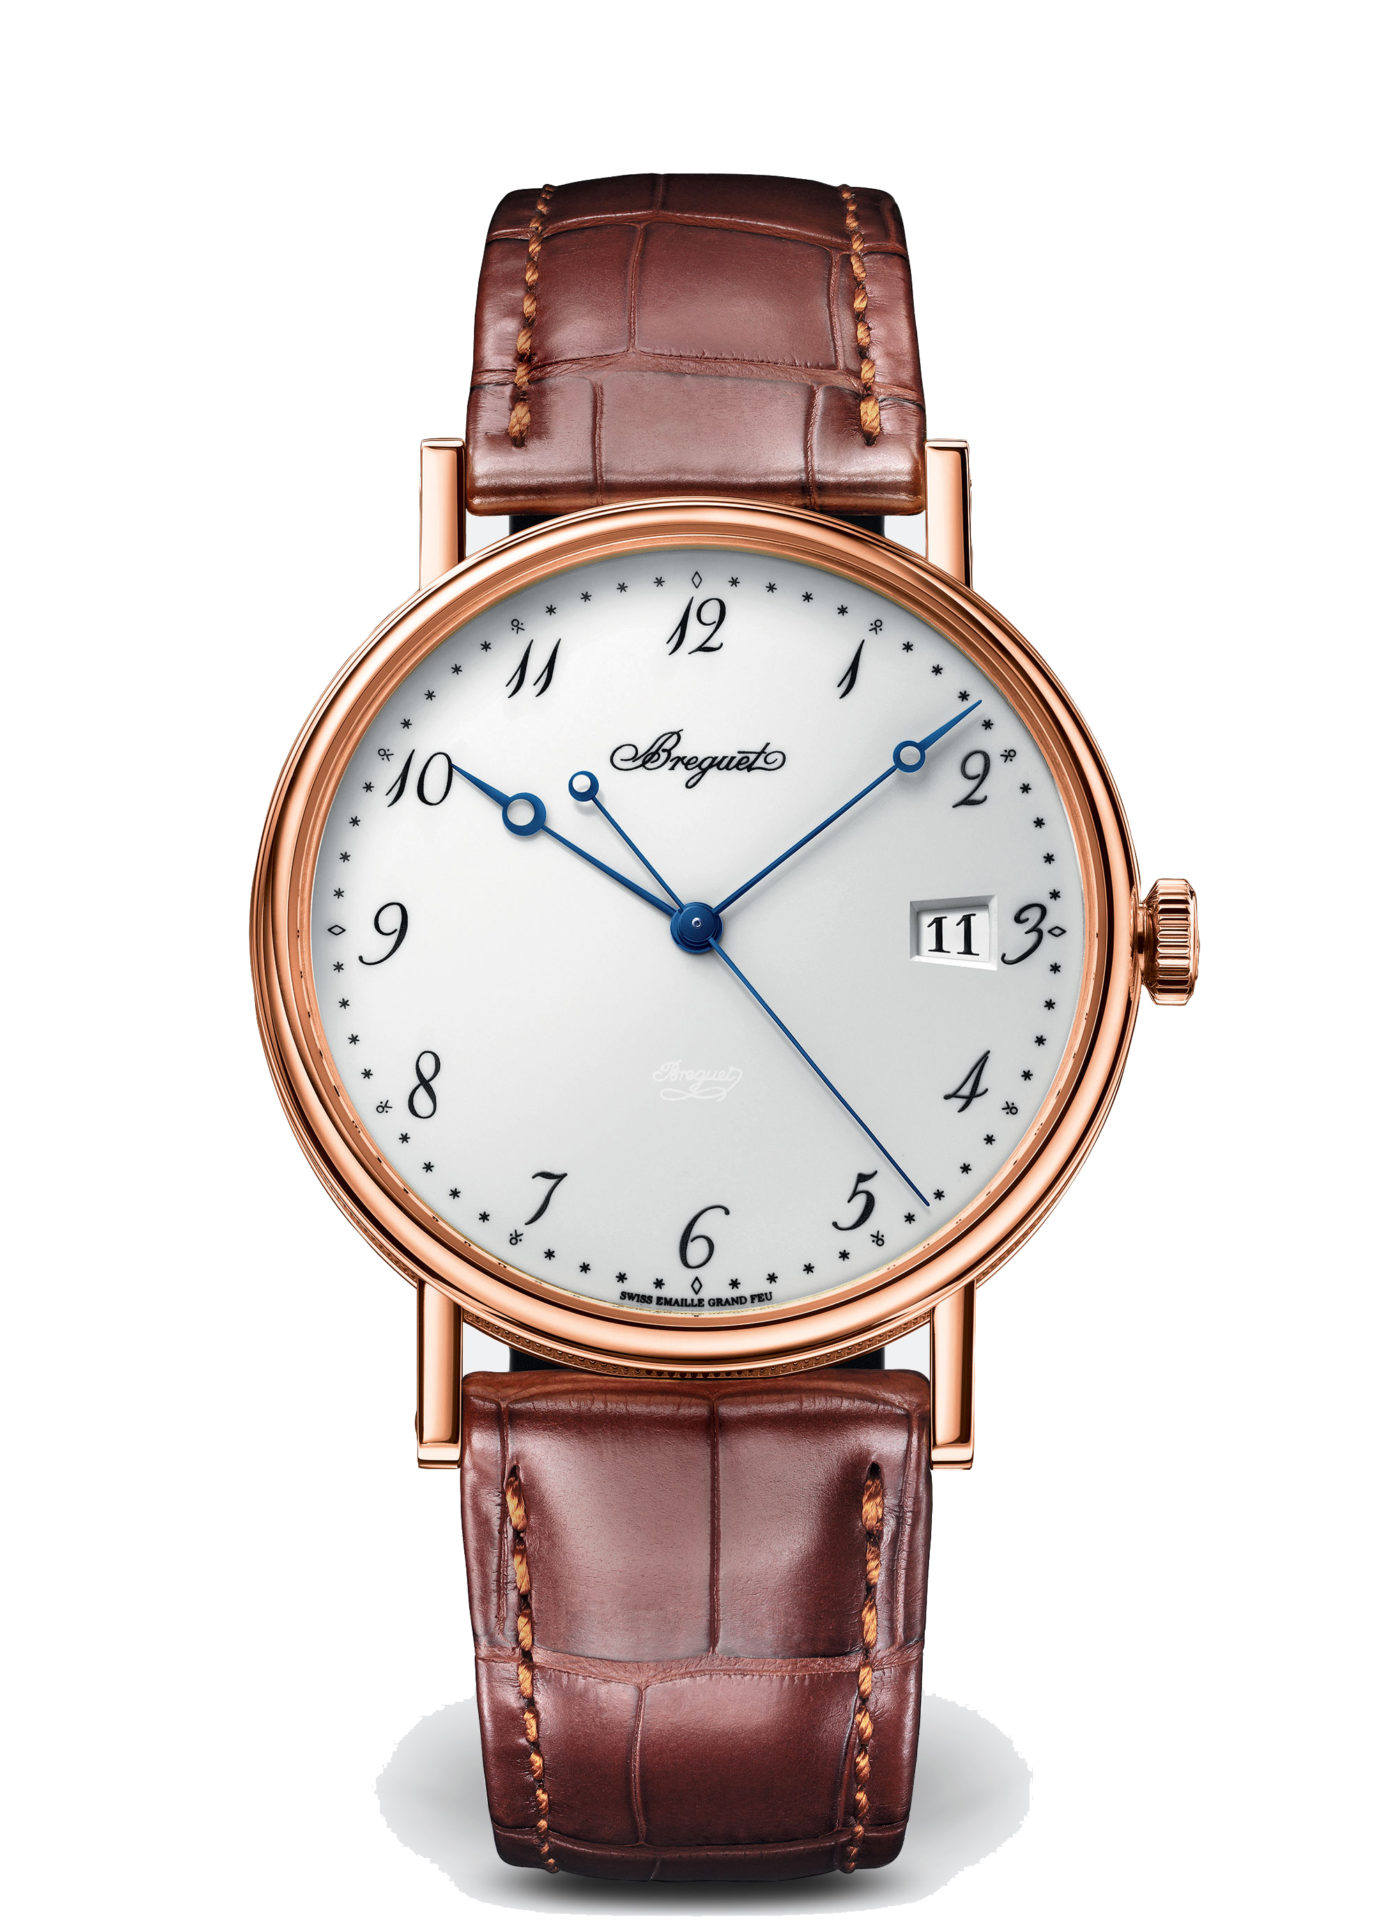 Breguet-Classique-5177-Hall-of-Time-5177br-29-9v6-0 copie